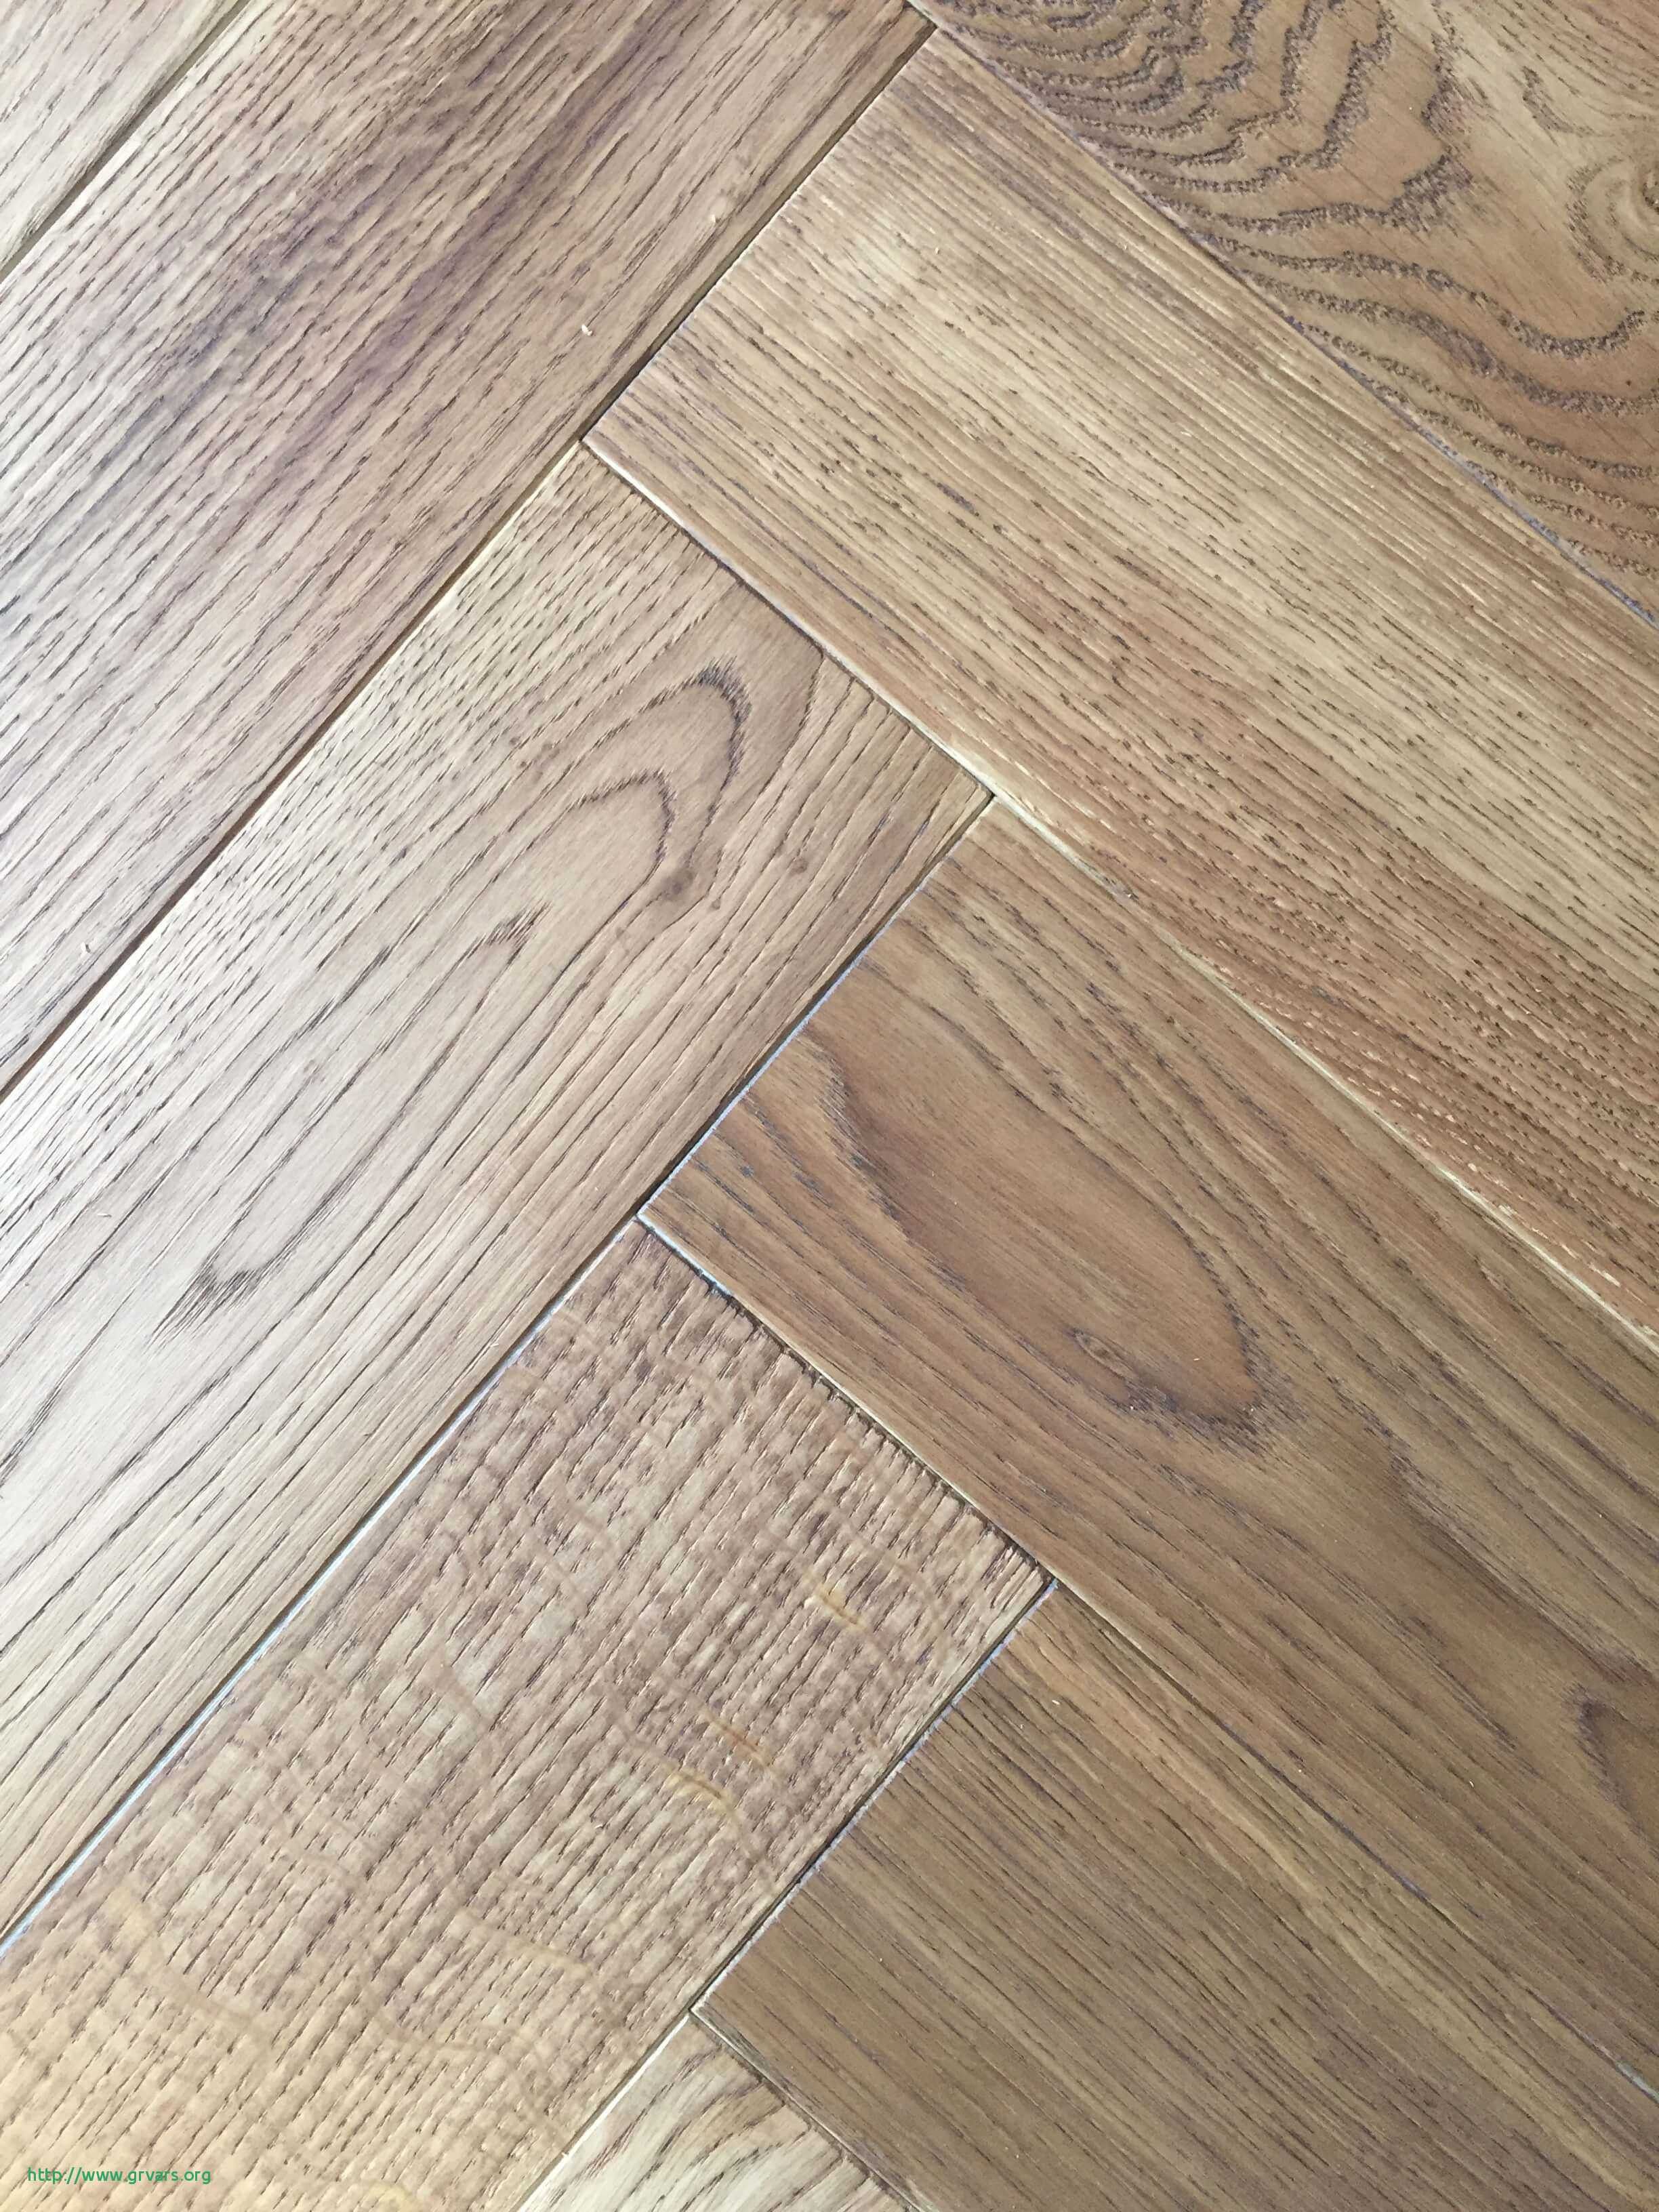 hardwood vs bamboo vs cork flooring of 19 frais laminate flooring compared to hardwood ideas blog within laminate flooring compared to hardwood beau laminate flooring ideas